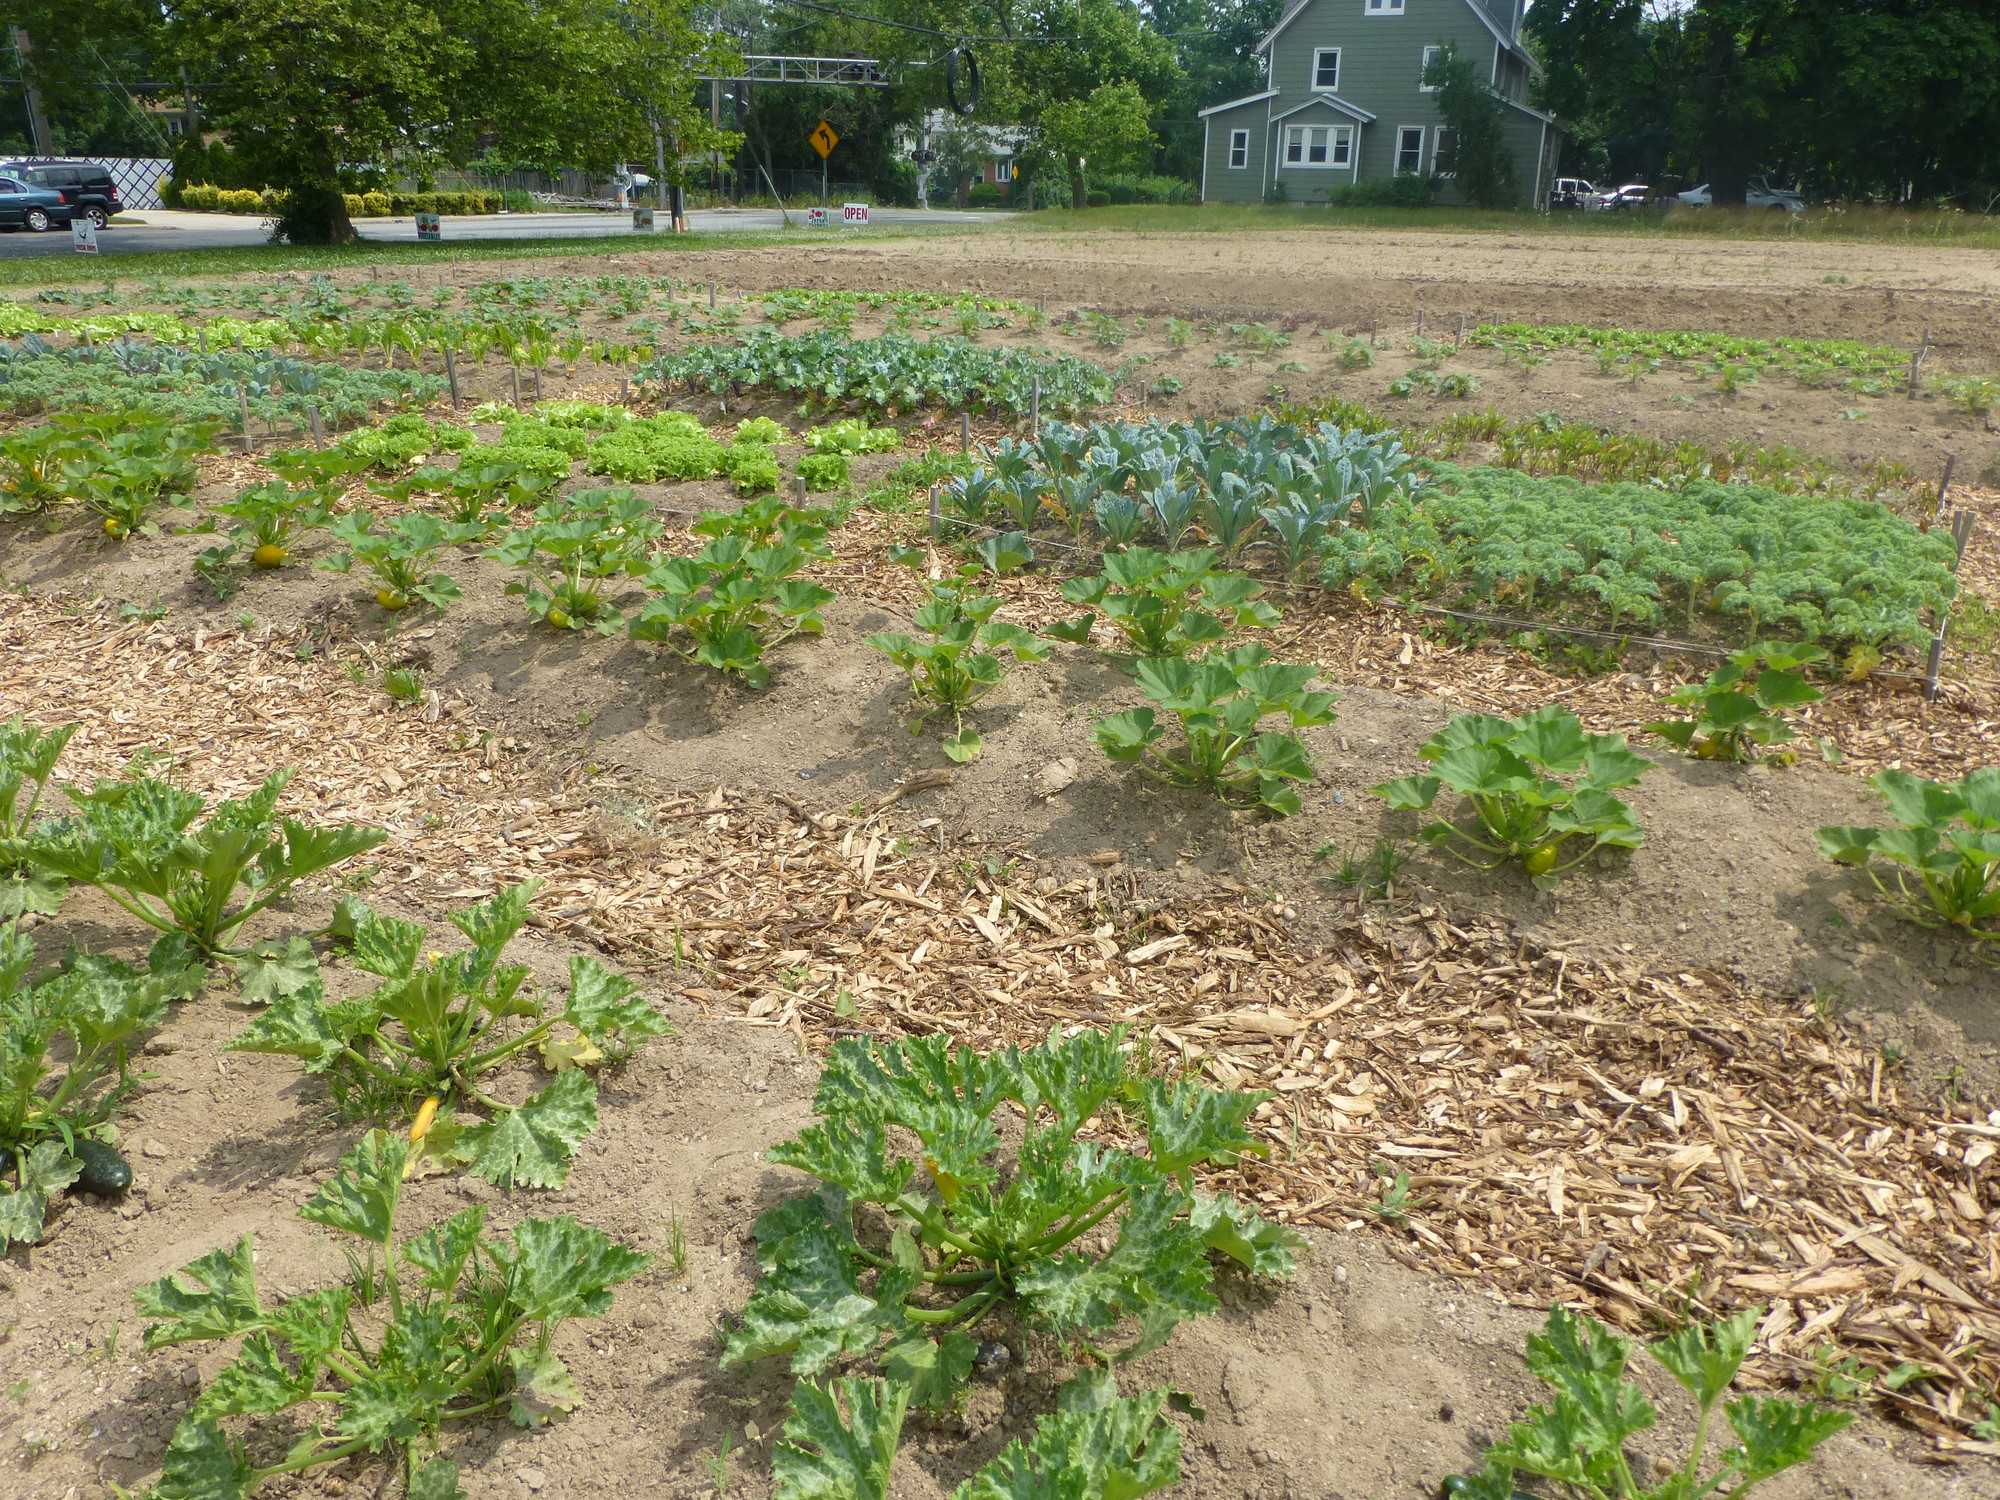 The fields sprouted a variety of summer vegetables, including kale, eggplant, potatoes, squash, cabbage, carrots, broccoli, cucumbers and sweet corn.